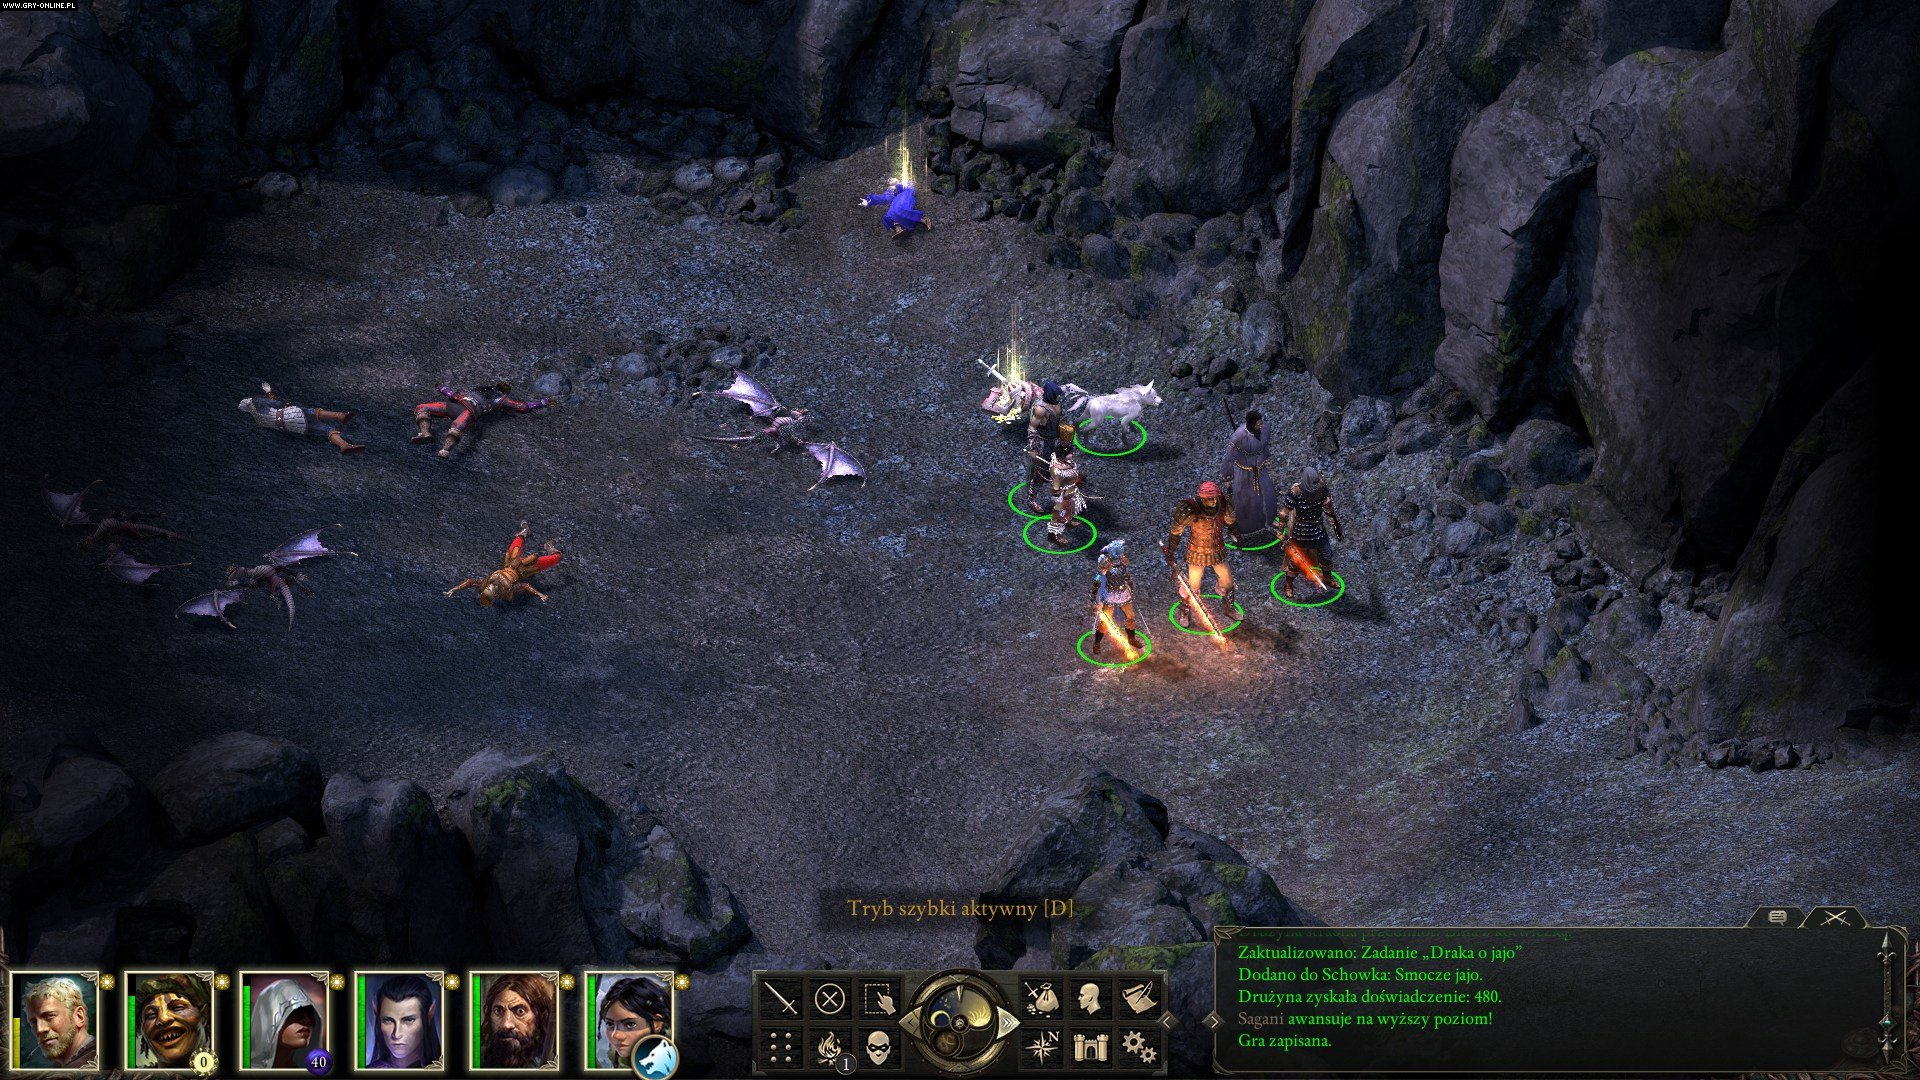 Pillars of Eternity PC Games Image 1/89, Obsidian Entertainment, Paradox Interactive